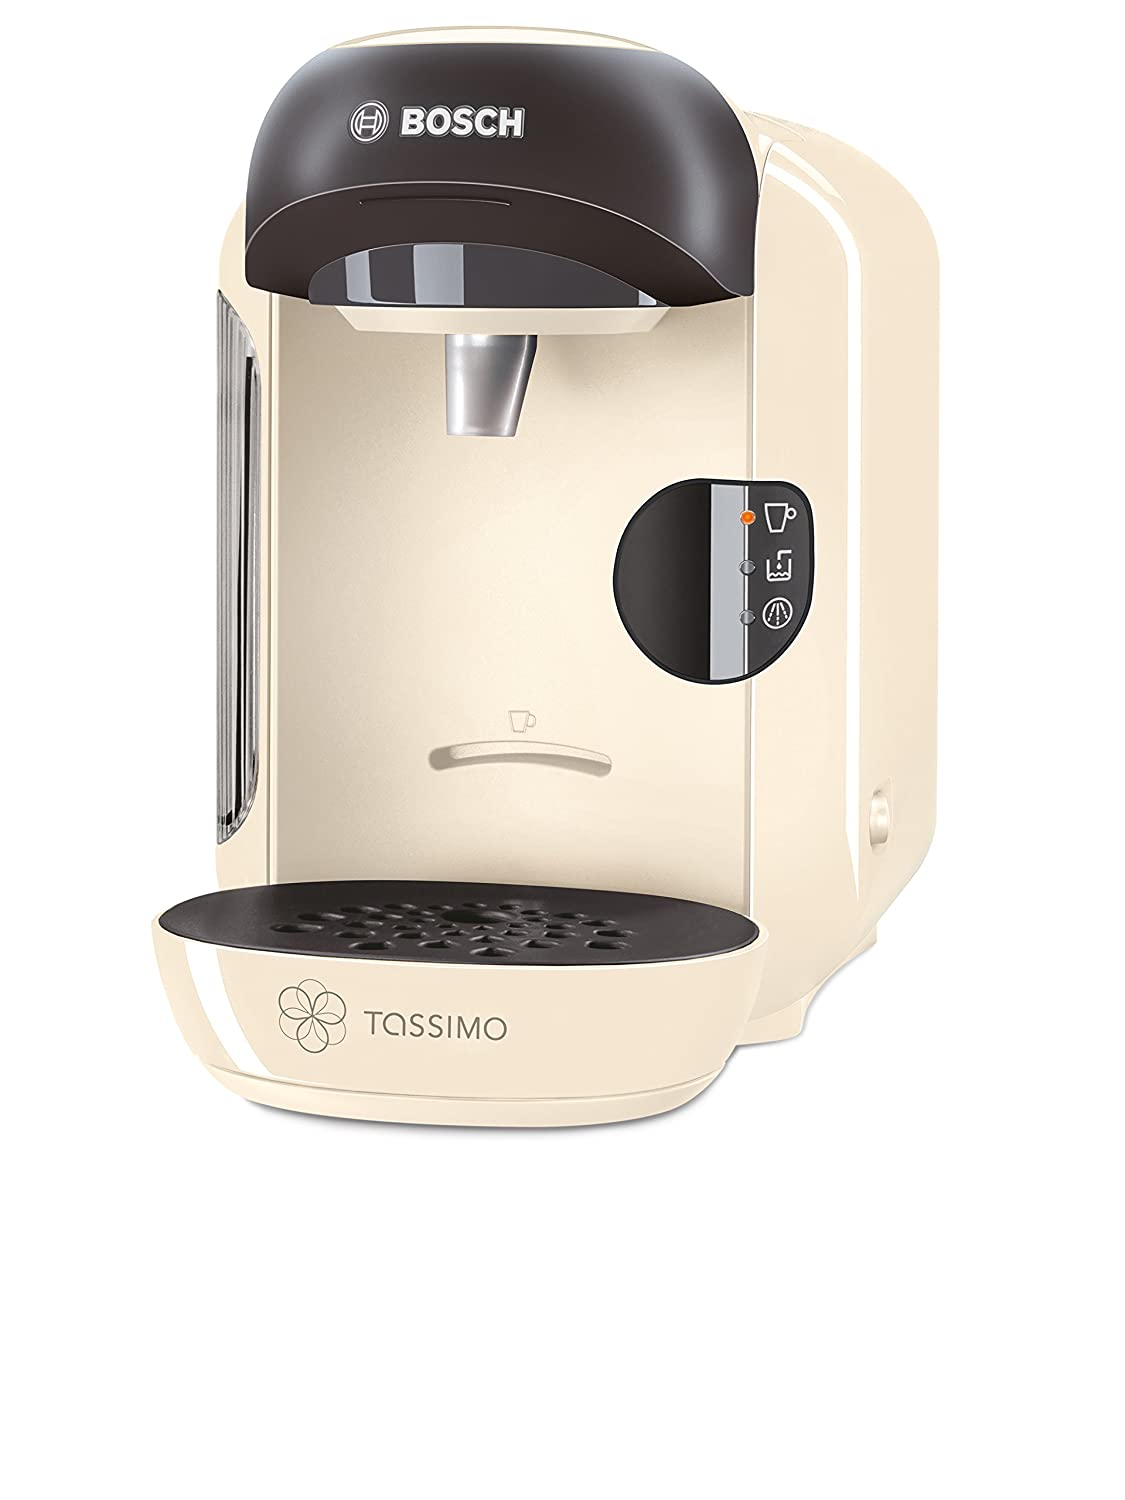 New Bosch Tassimo Vivy Hot Drinks and Coffee Machine 1300 W Cream Home Appliance 4242002838076 ...